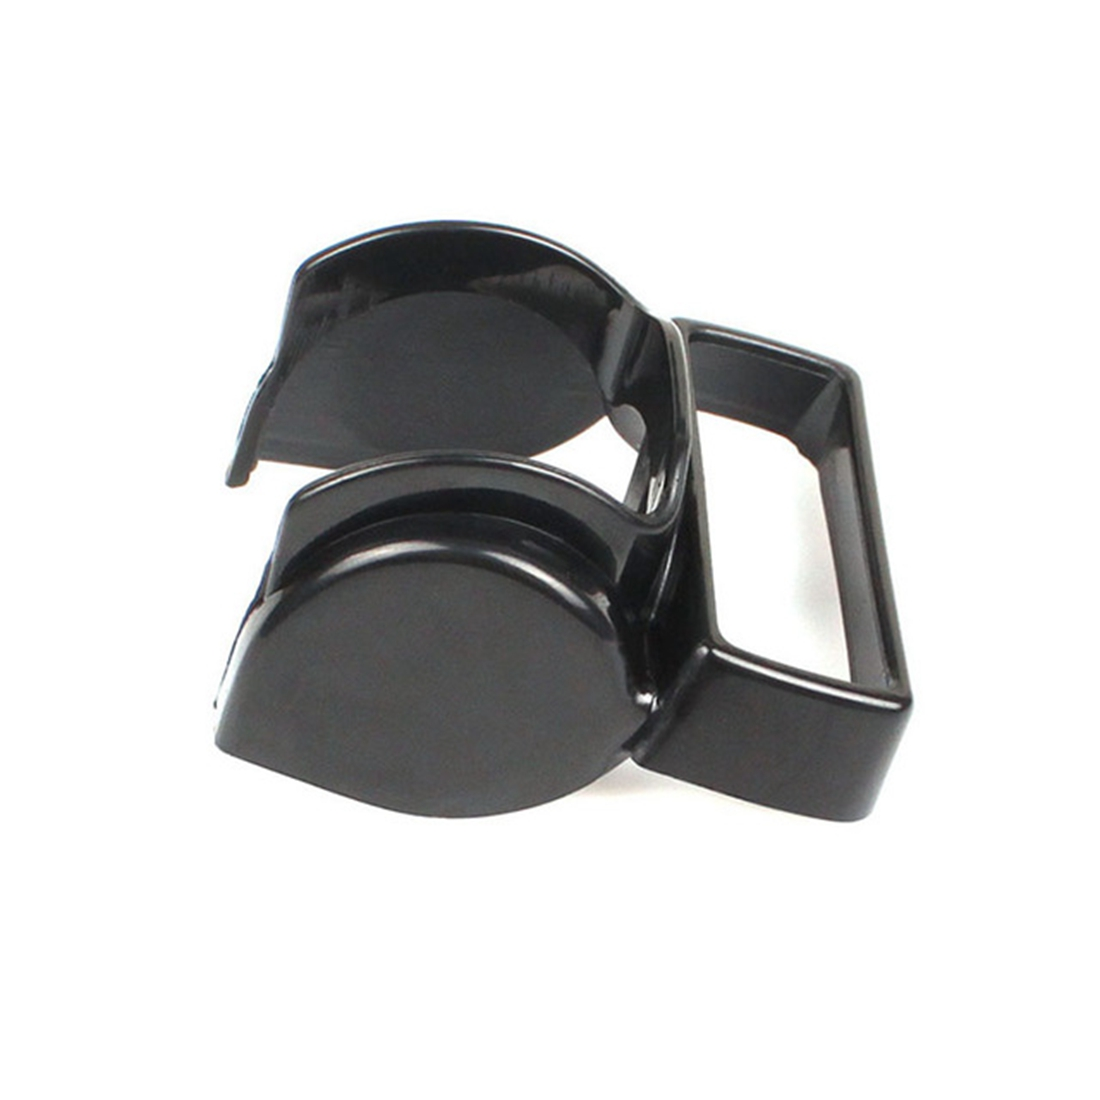 Anti-Glare Gimbal Camera Protector Cover Lens Hood Sunshade Protection Cap for DJI